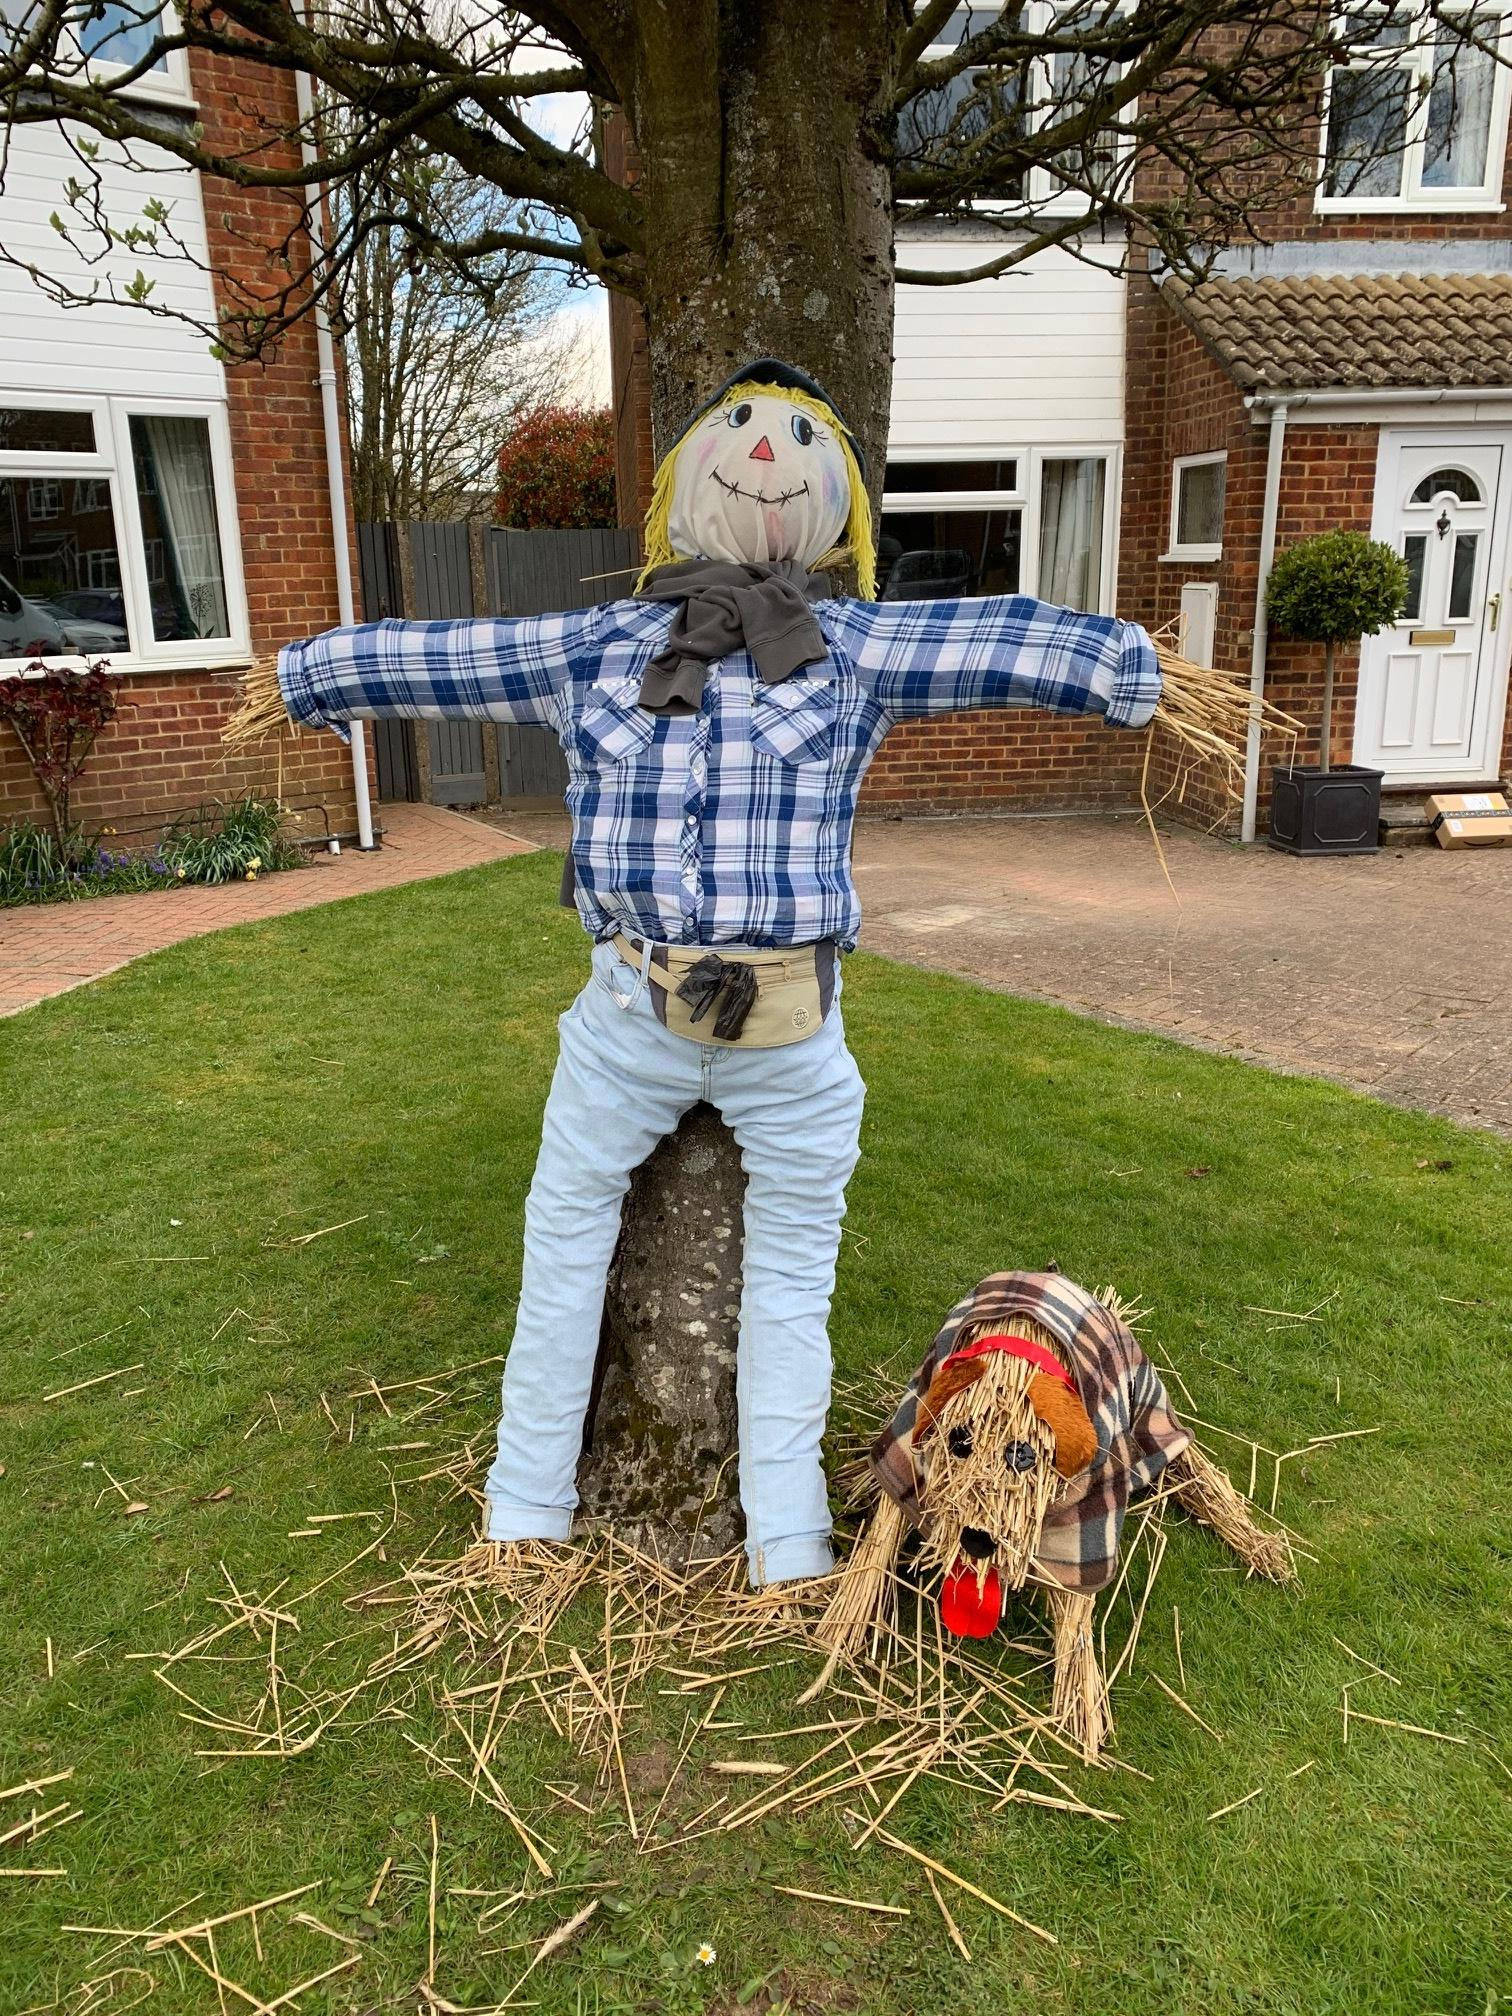 There are over 50 scarecrows